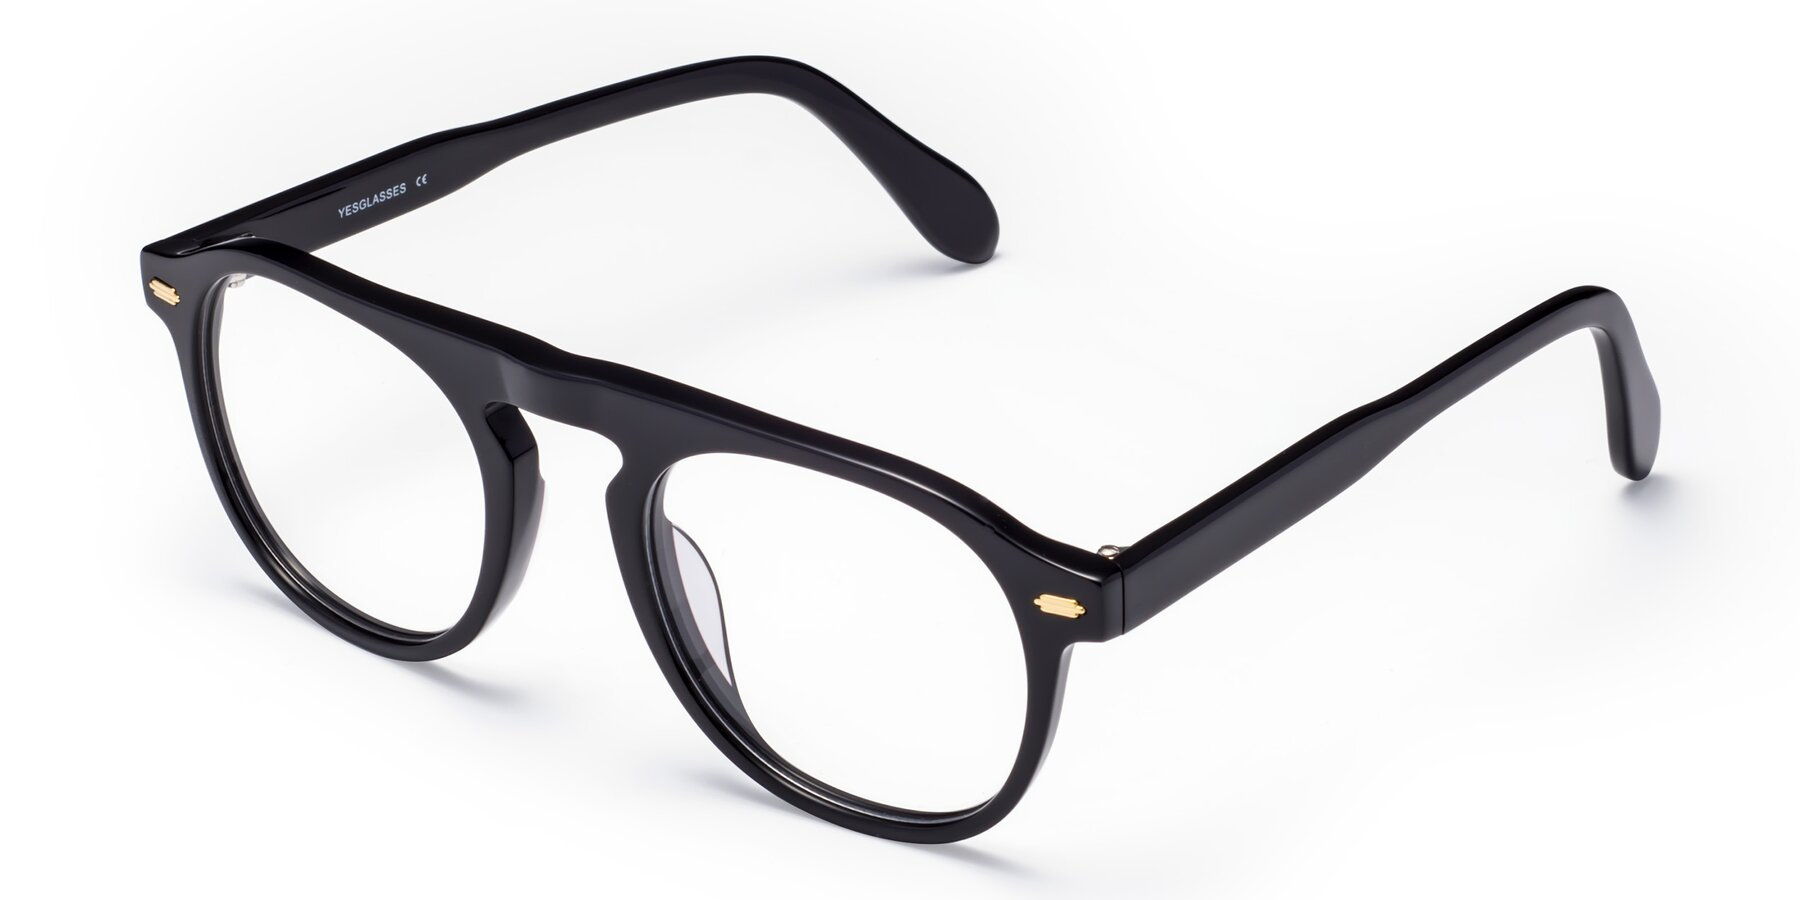 Angle of Mufasa in Black with Clear Eyeglass Lenses